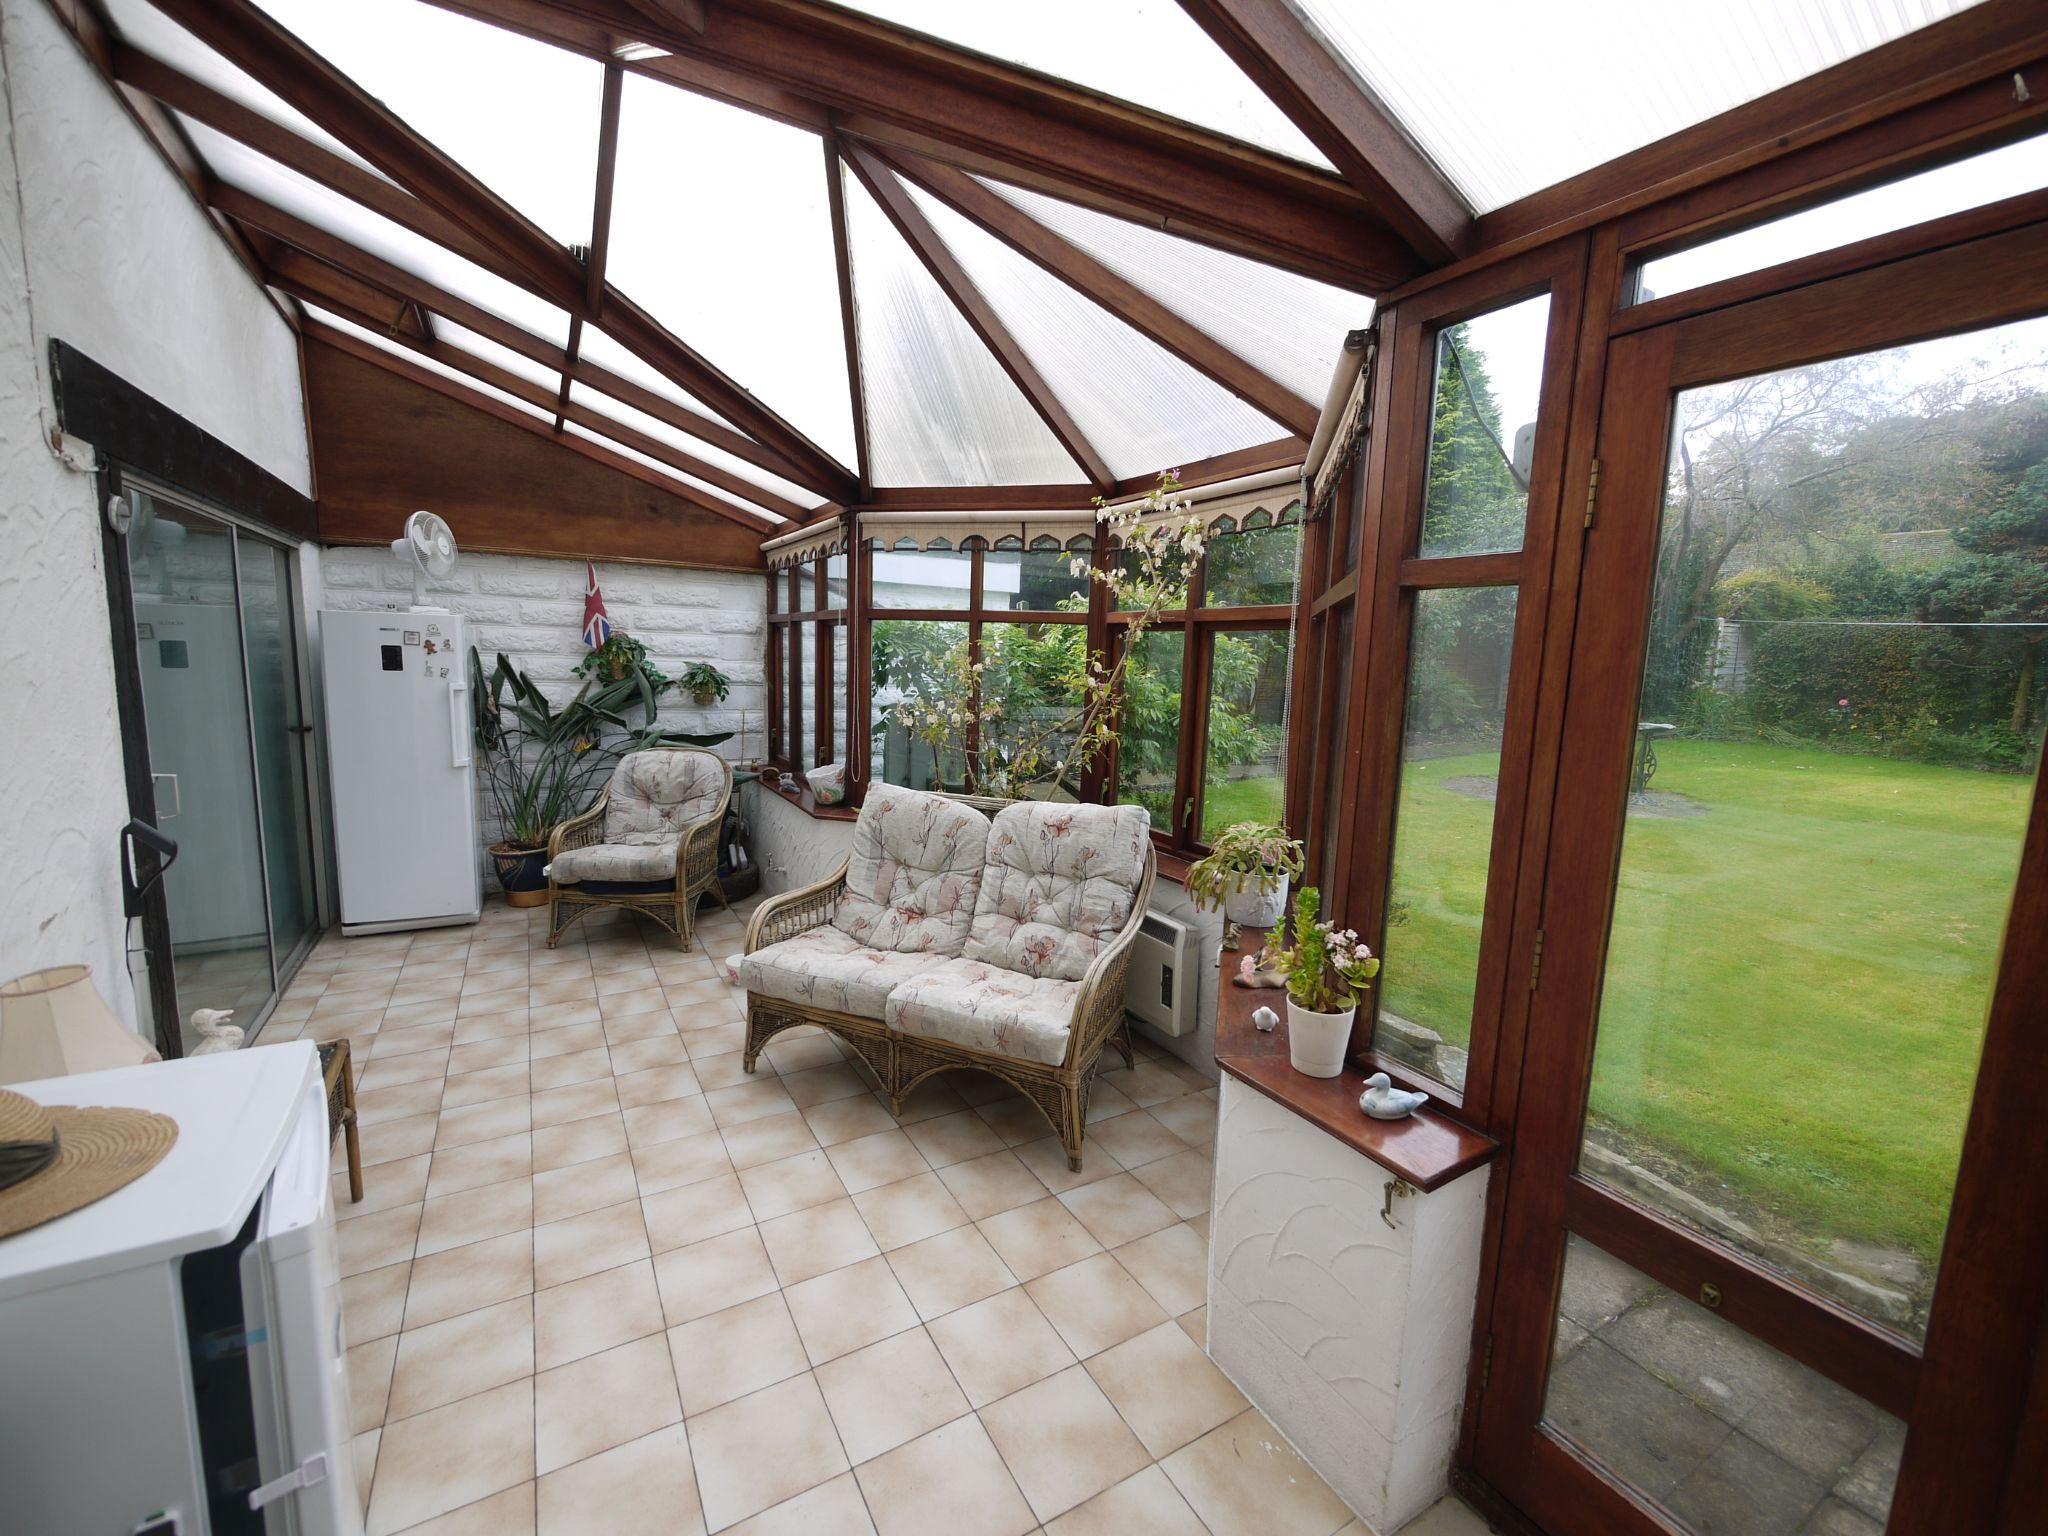 3 bedroom detached house SSTC in Brighouse - Conservatory.